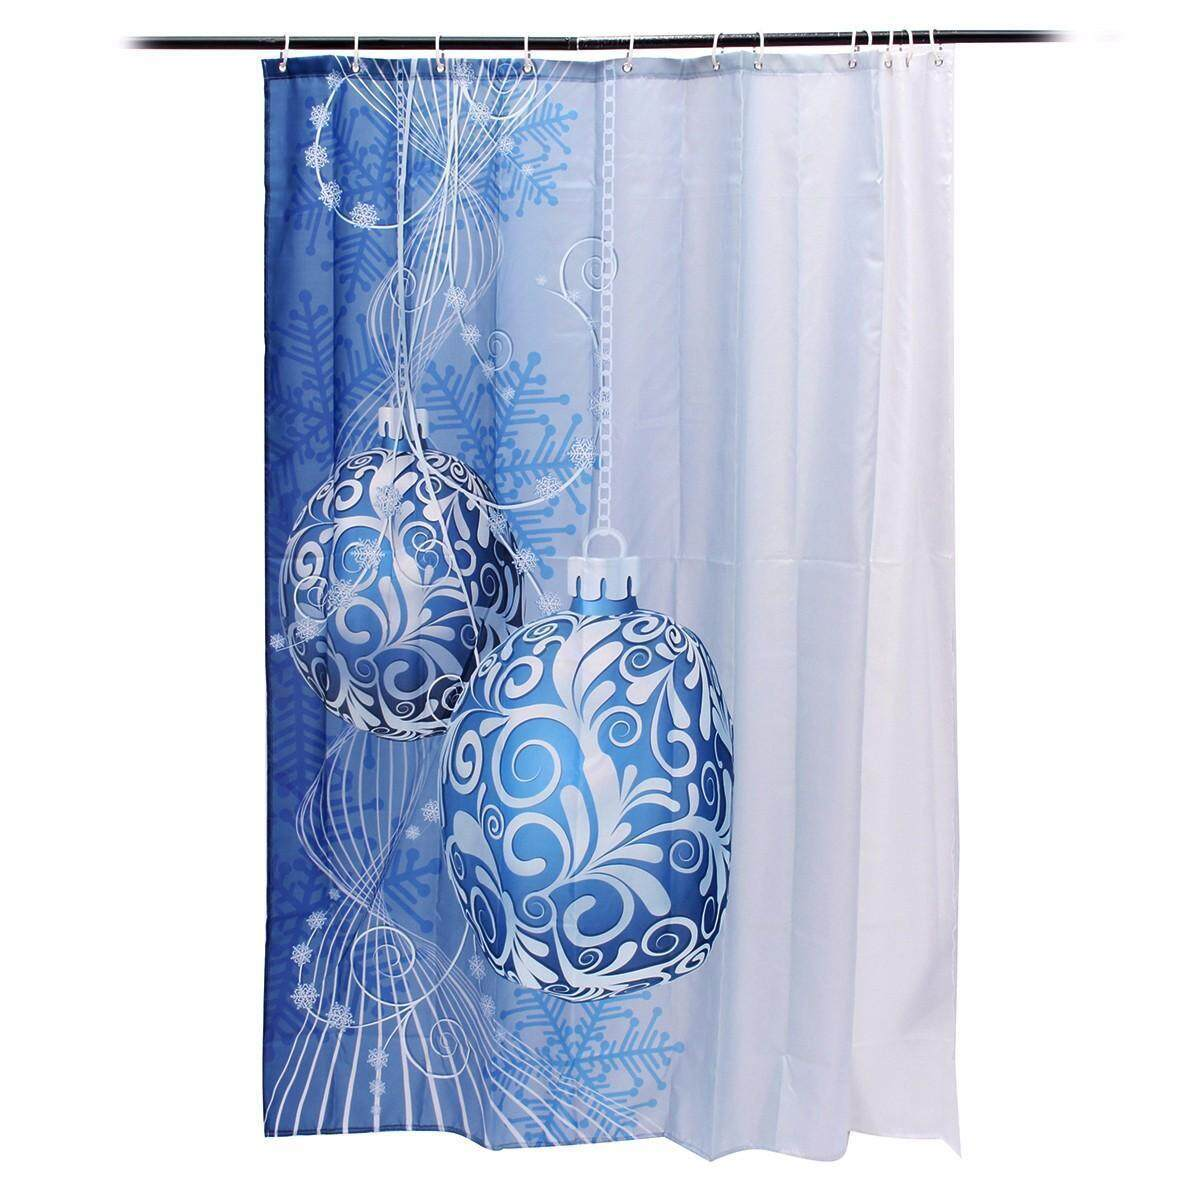 180x180cm Christmas Xmas Blue Hanging Ball Ornament Bathroom Shower Curtains With Hooks Ring